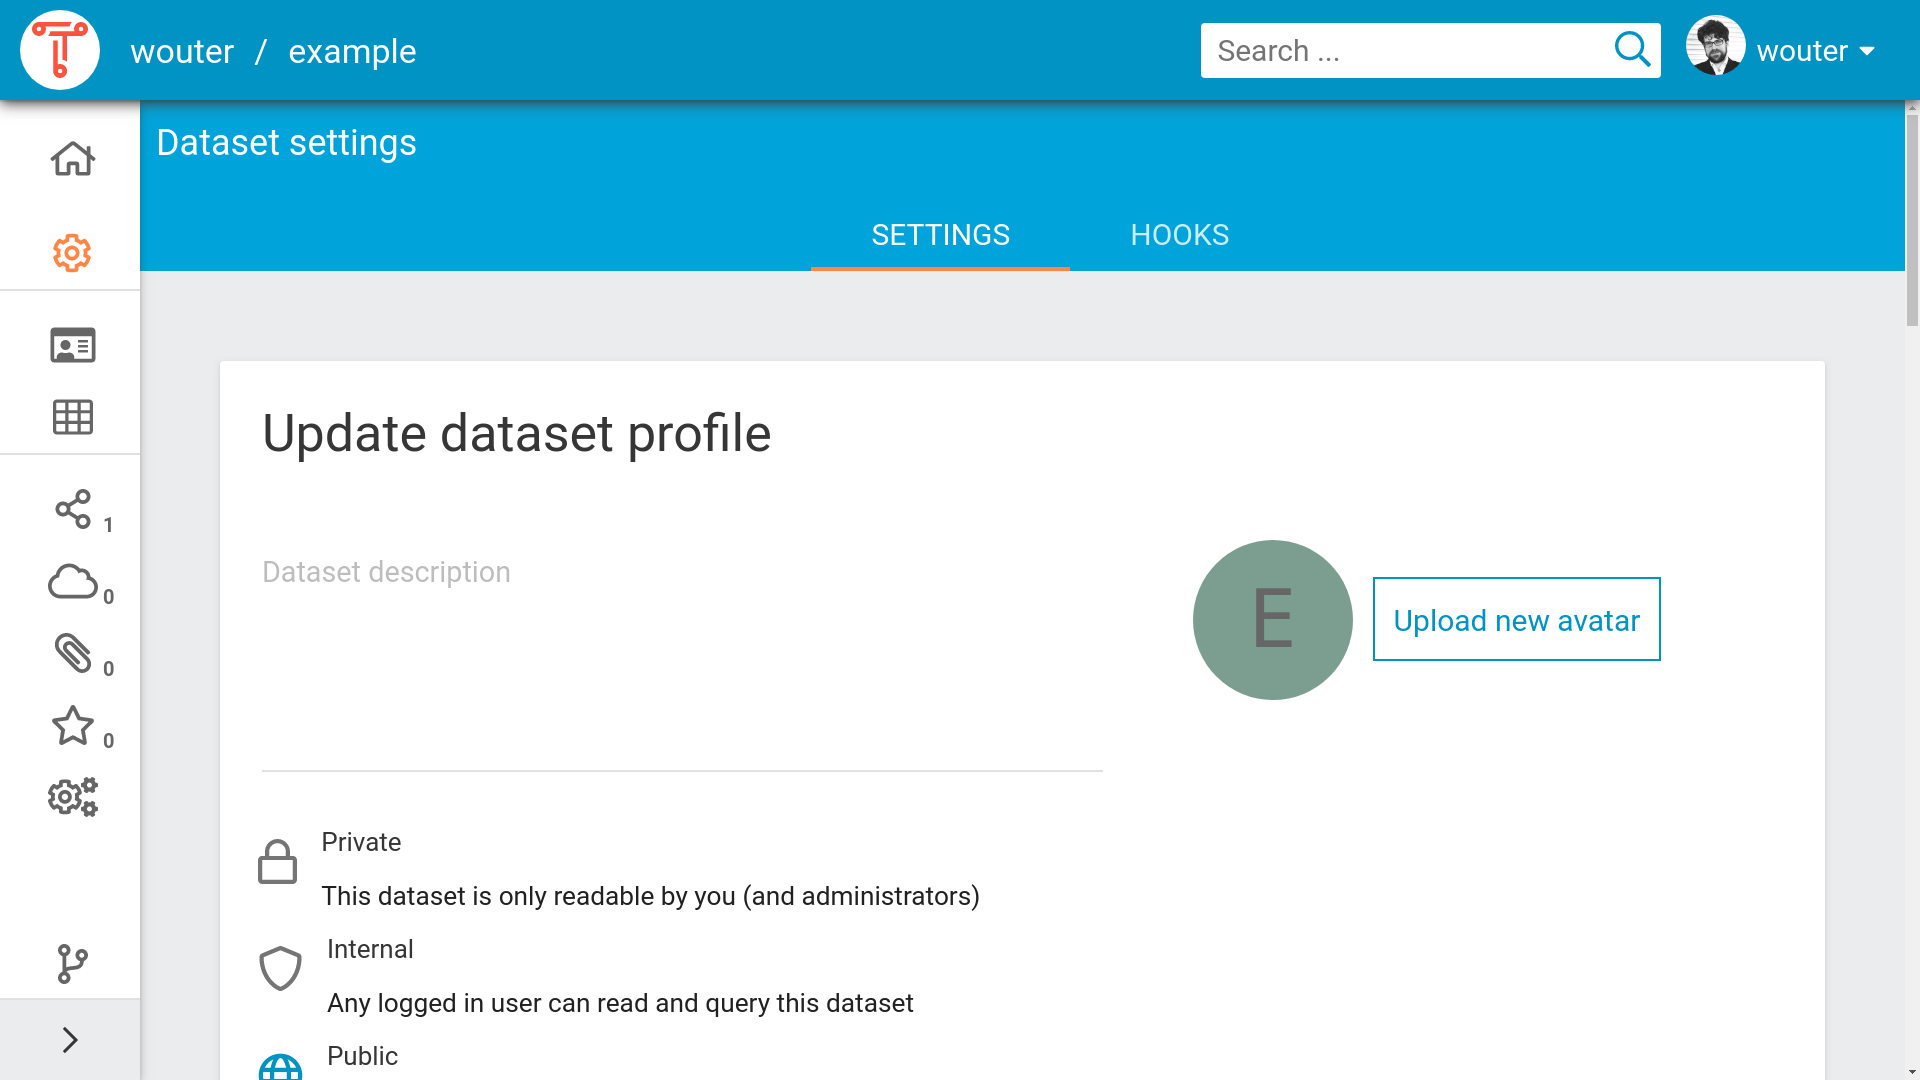 dataset-settings-page.png